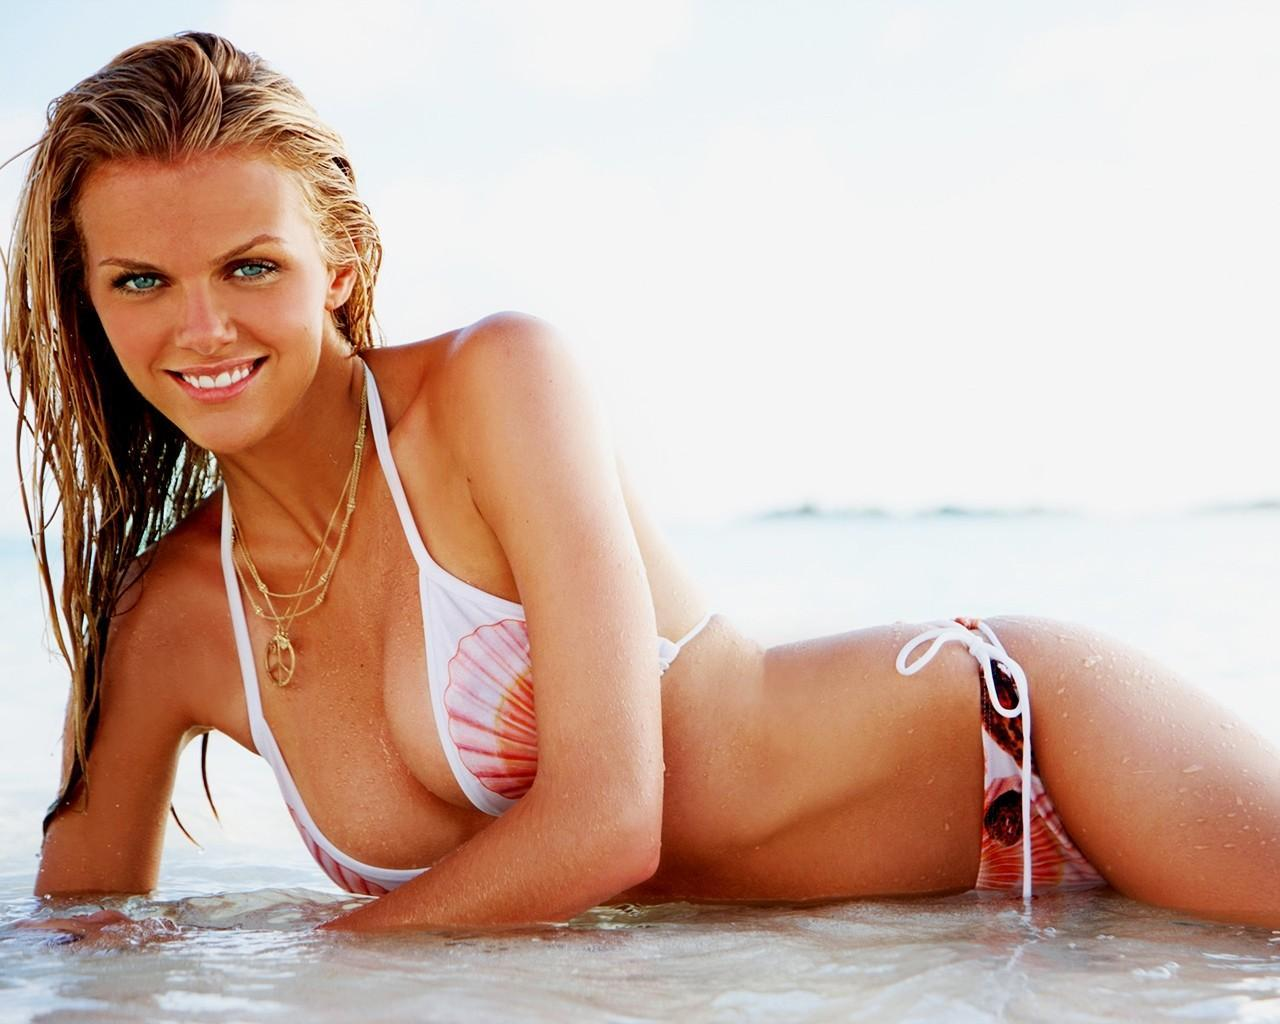 BROOKLYN DECKER   HOT MODELS AND ACTRESS PICTURES